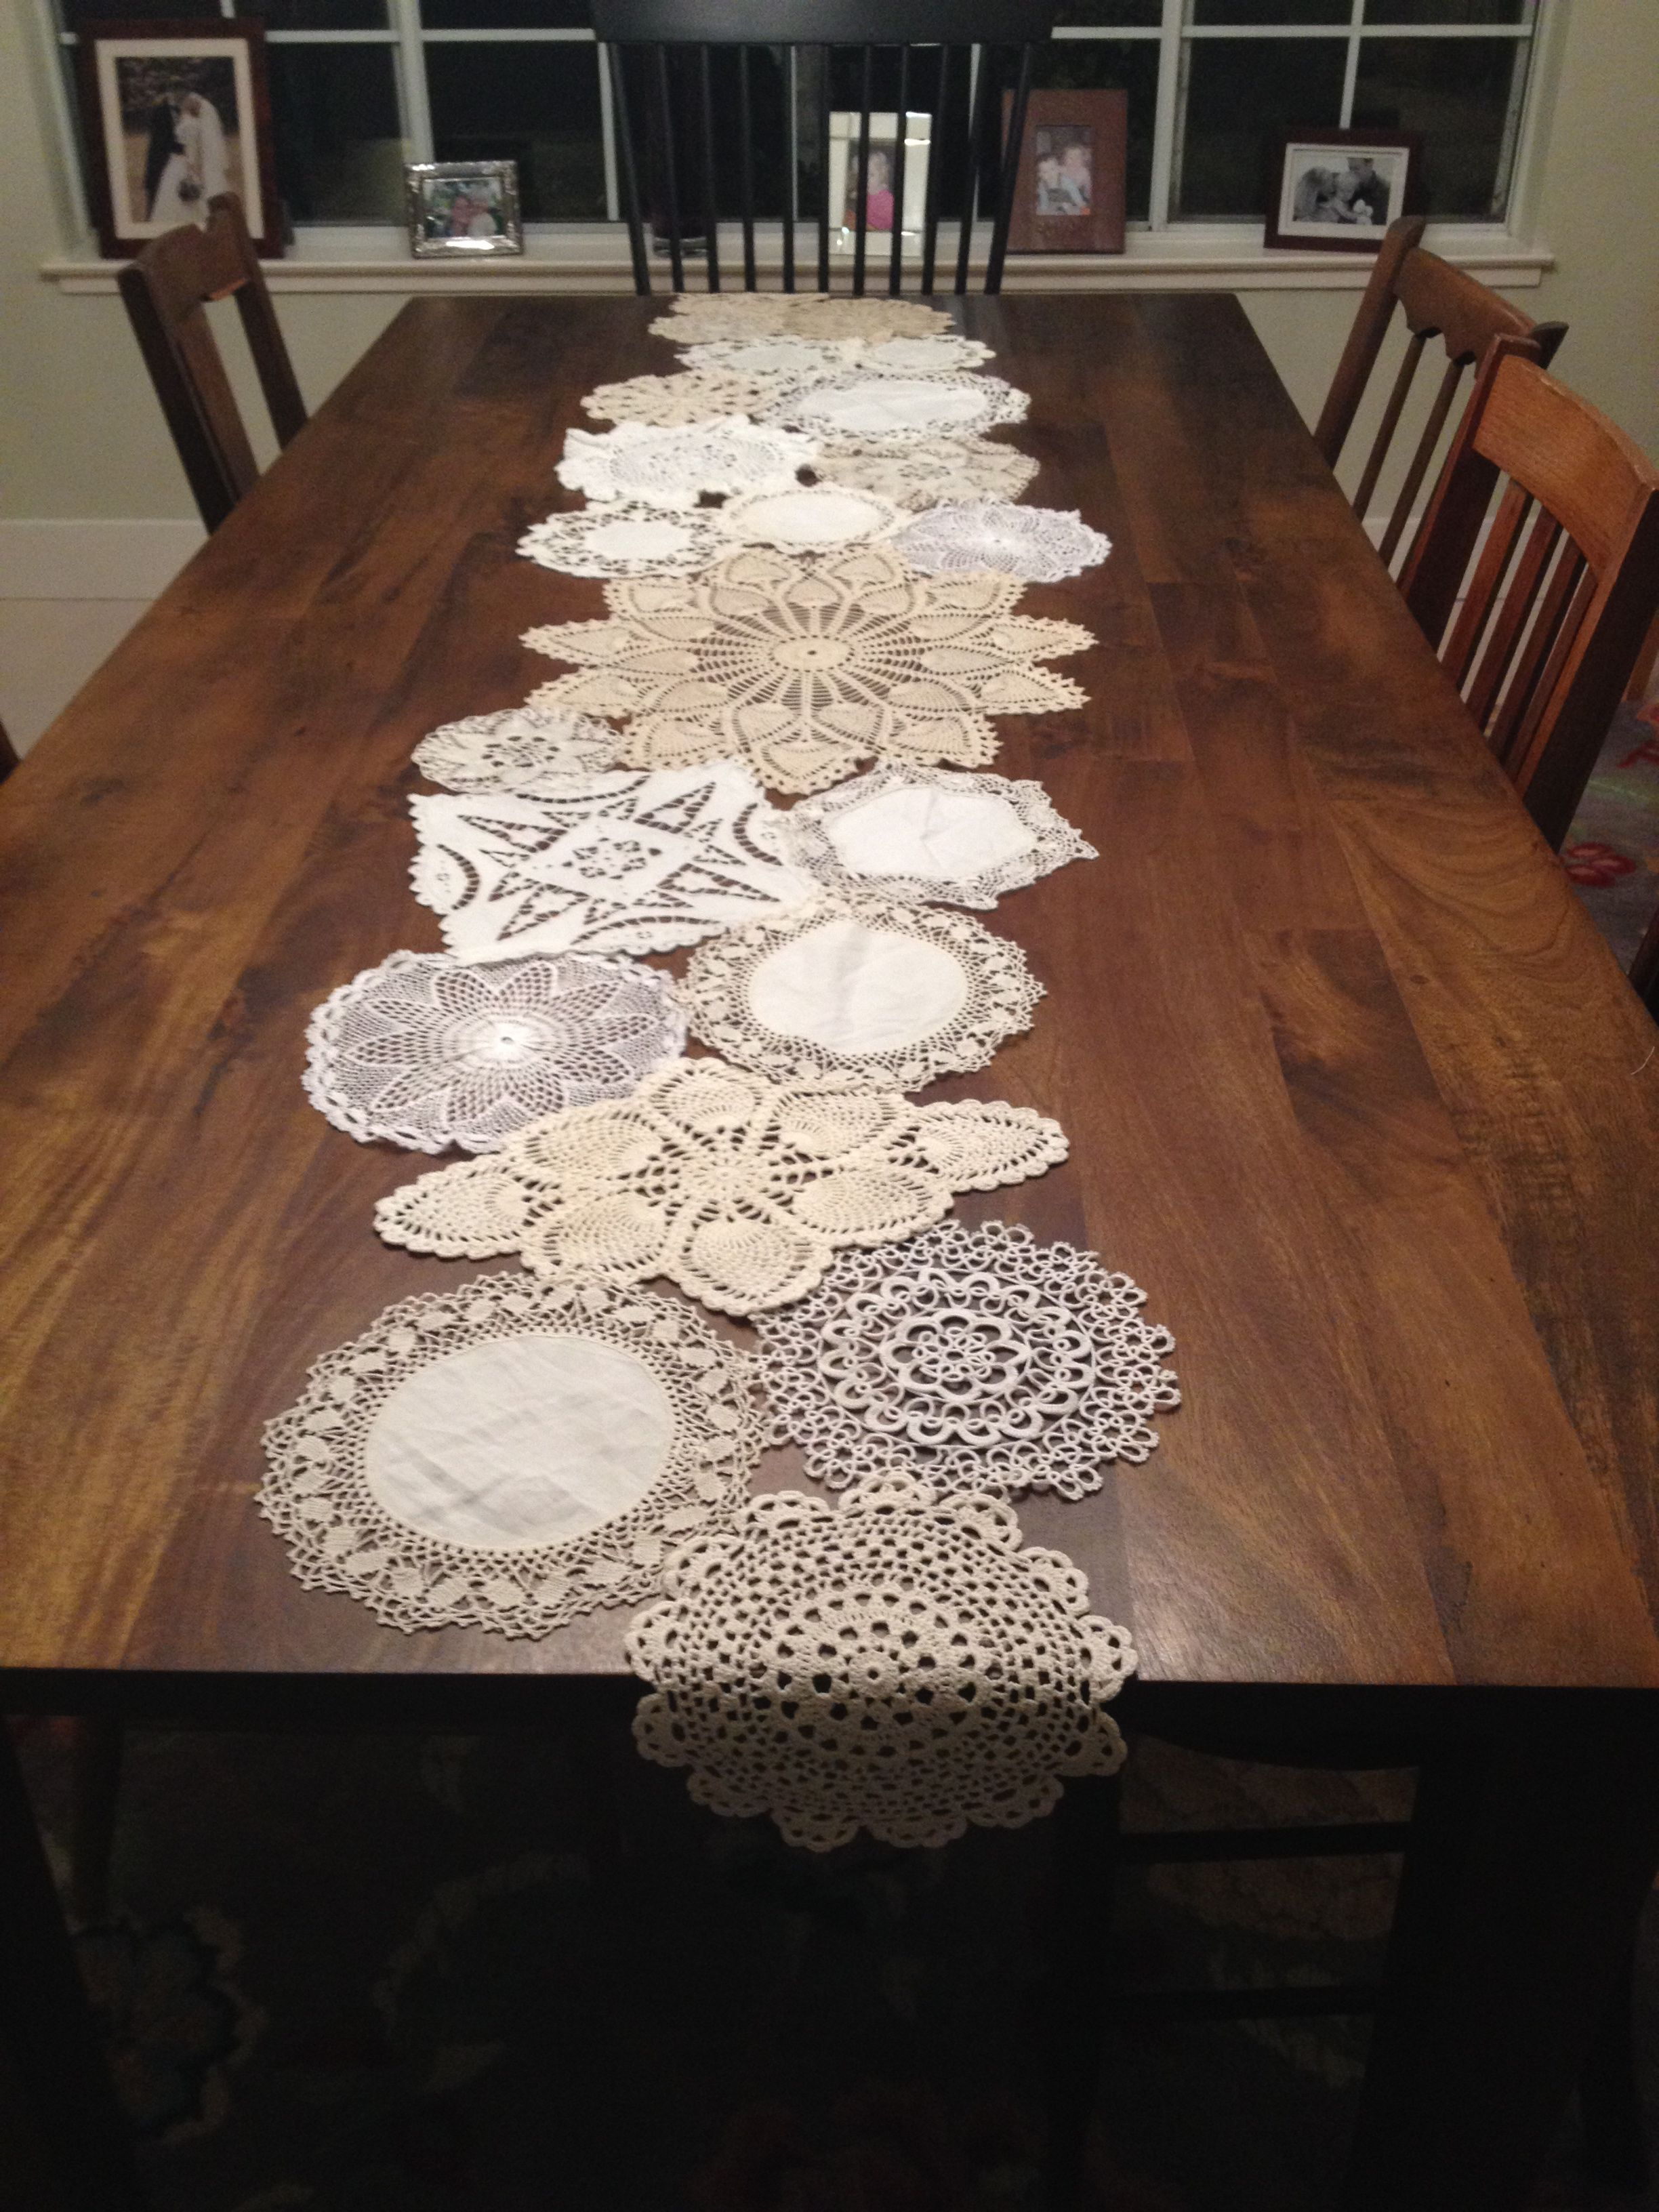 Farmhouse Style Table Runners Doily Table Runner For The Home Pinterest Bricolage